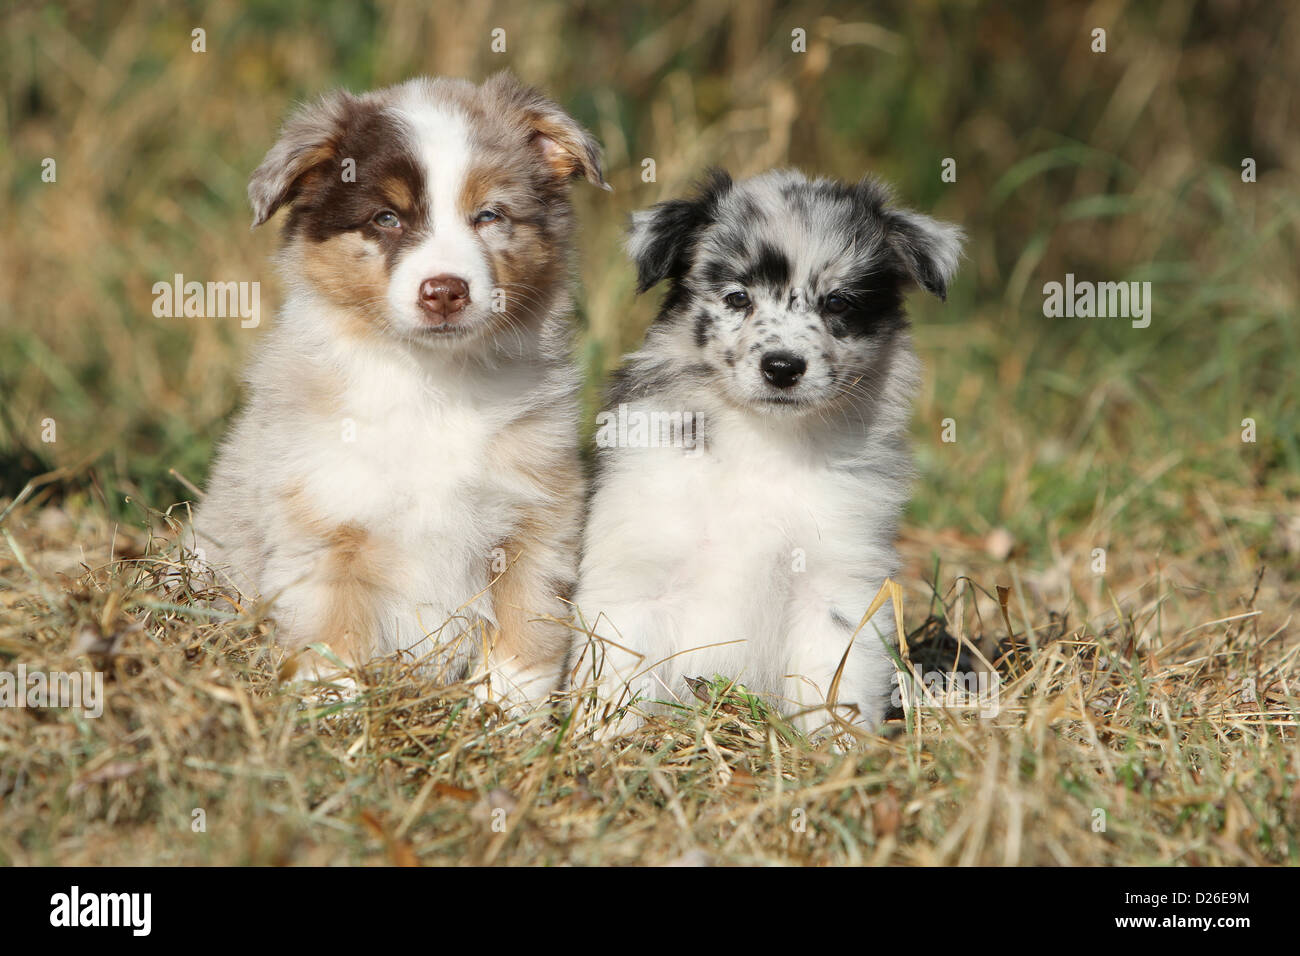 dog australian shepherd aussie two puppies different colors red stock photo 53003376 alamy. Black Bedroom Furniture Sets. Home Design Ideas